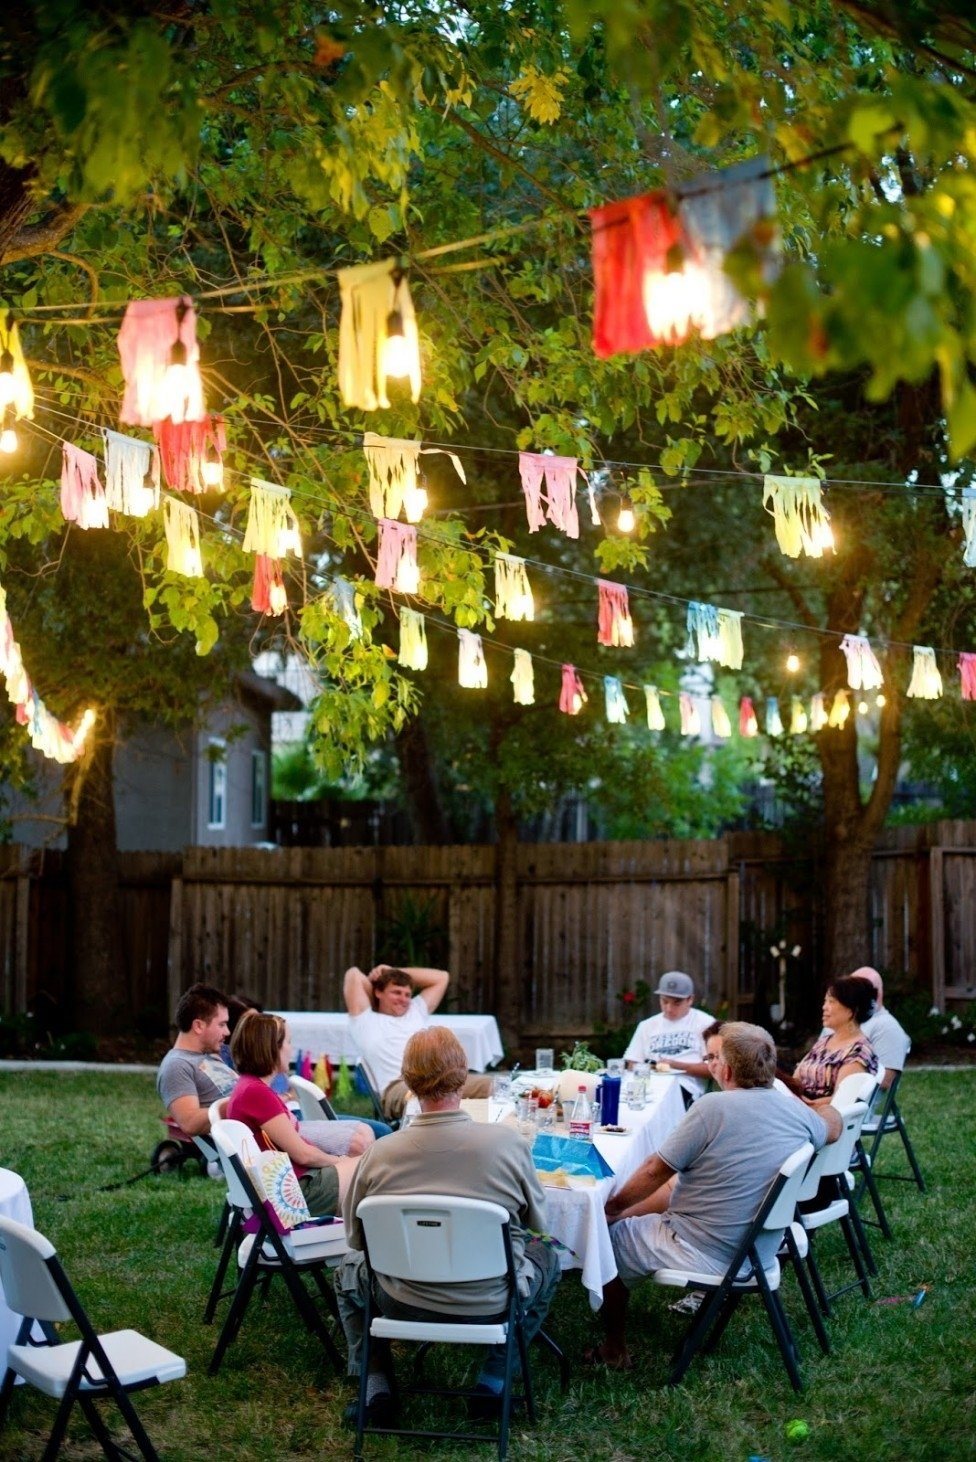 10 Cute Great Birthday Party Ideas For Adults pinmalia myers on bonfire bohemian party pinterest 18th 2 2021